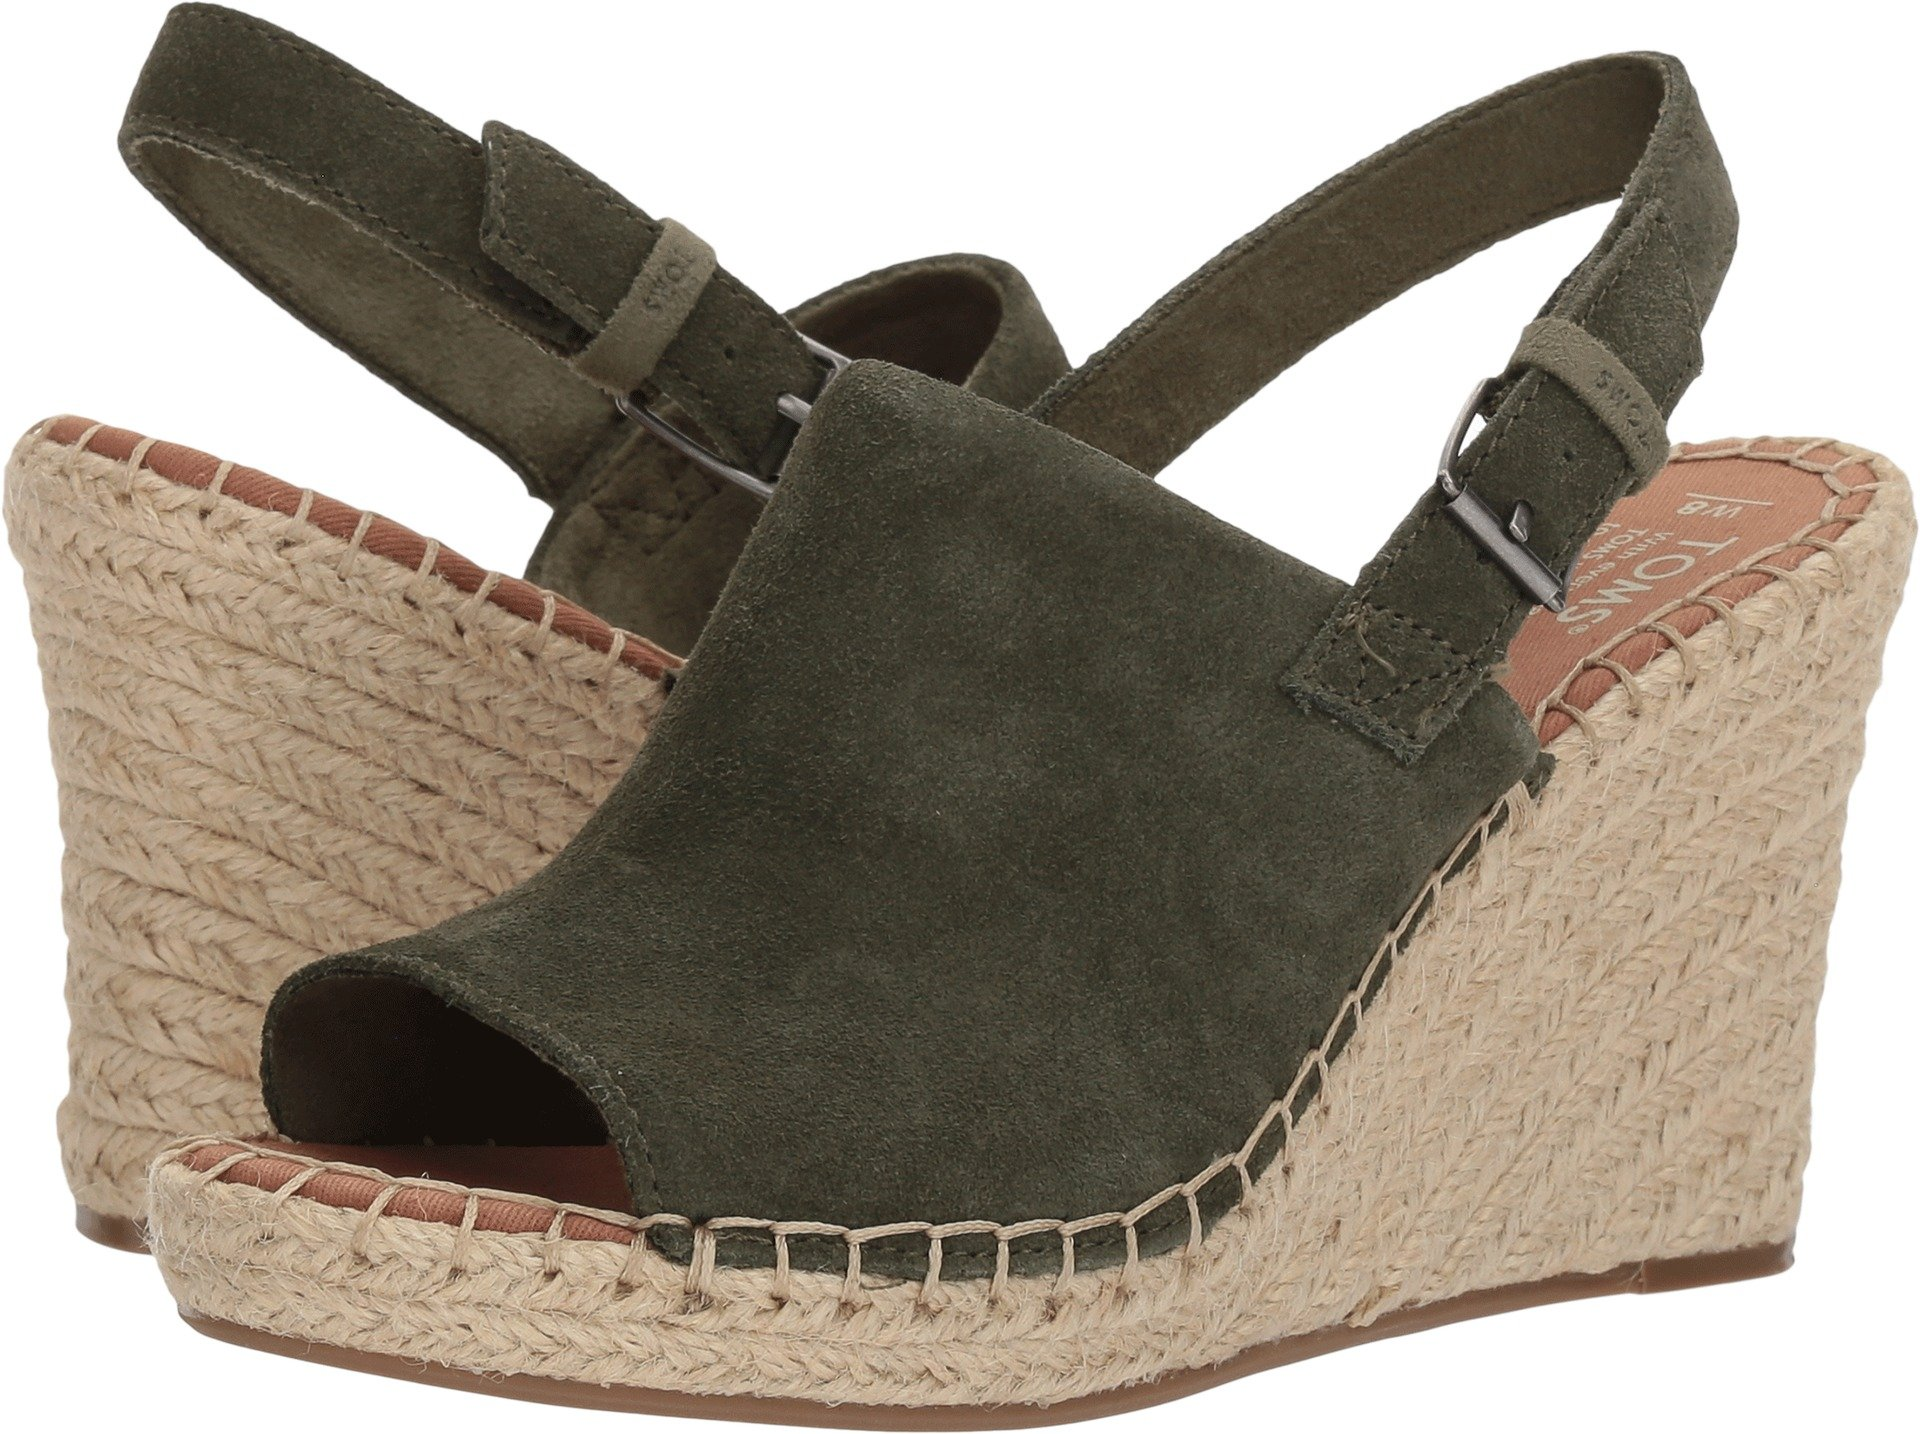 TOMS Women's Monica Pine Suede Wedge Sandals (11 B(M) US)